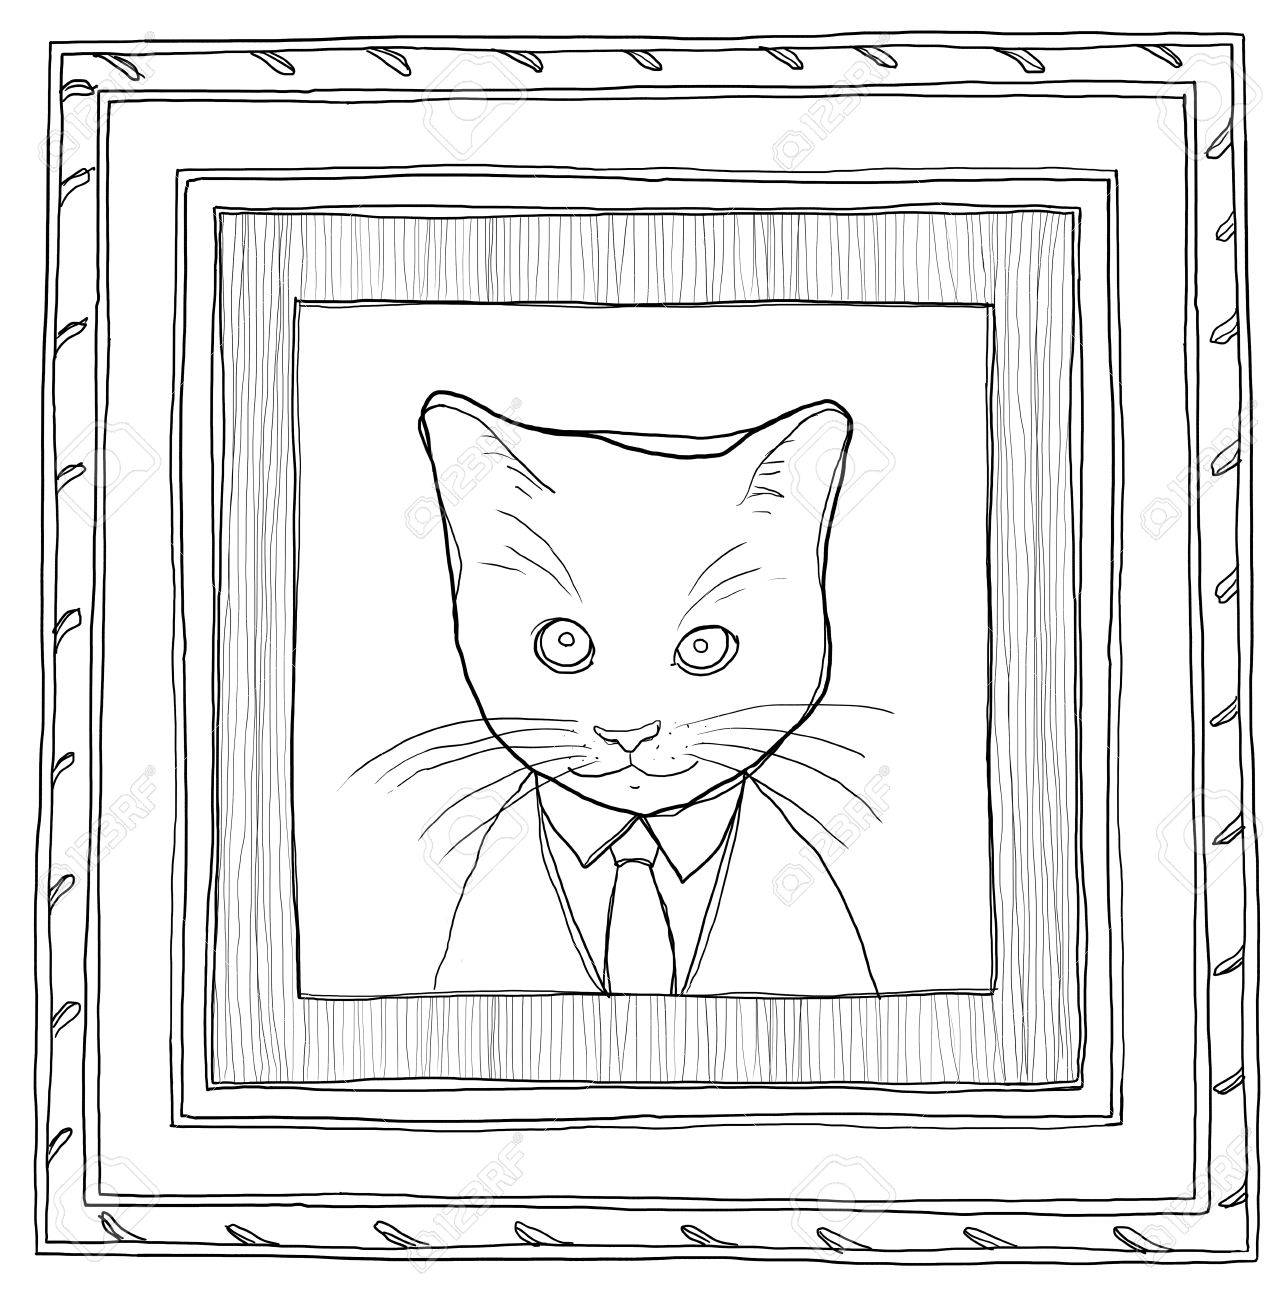 baf38826ef painting picture the cat in Wood Framed vintage line art Stock Photo -  30621297